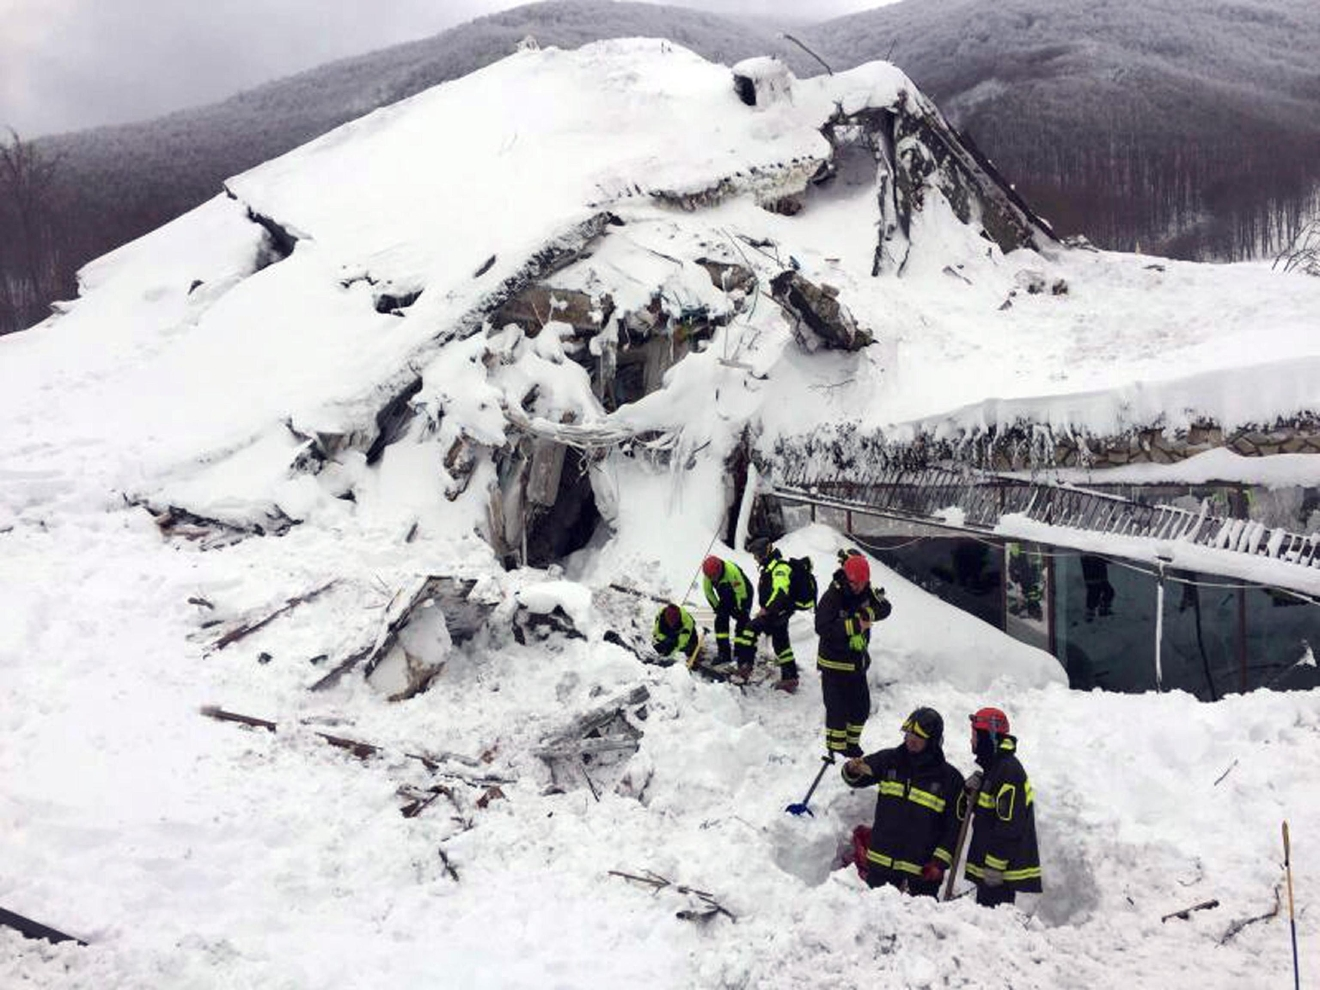 Rigopiano hotel avalanche first funerals as search goes on bbc news - Italian Firefighters Search For Survivors After An Avalanche Buried A Hotel Near Farindola Central Italy